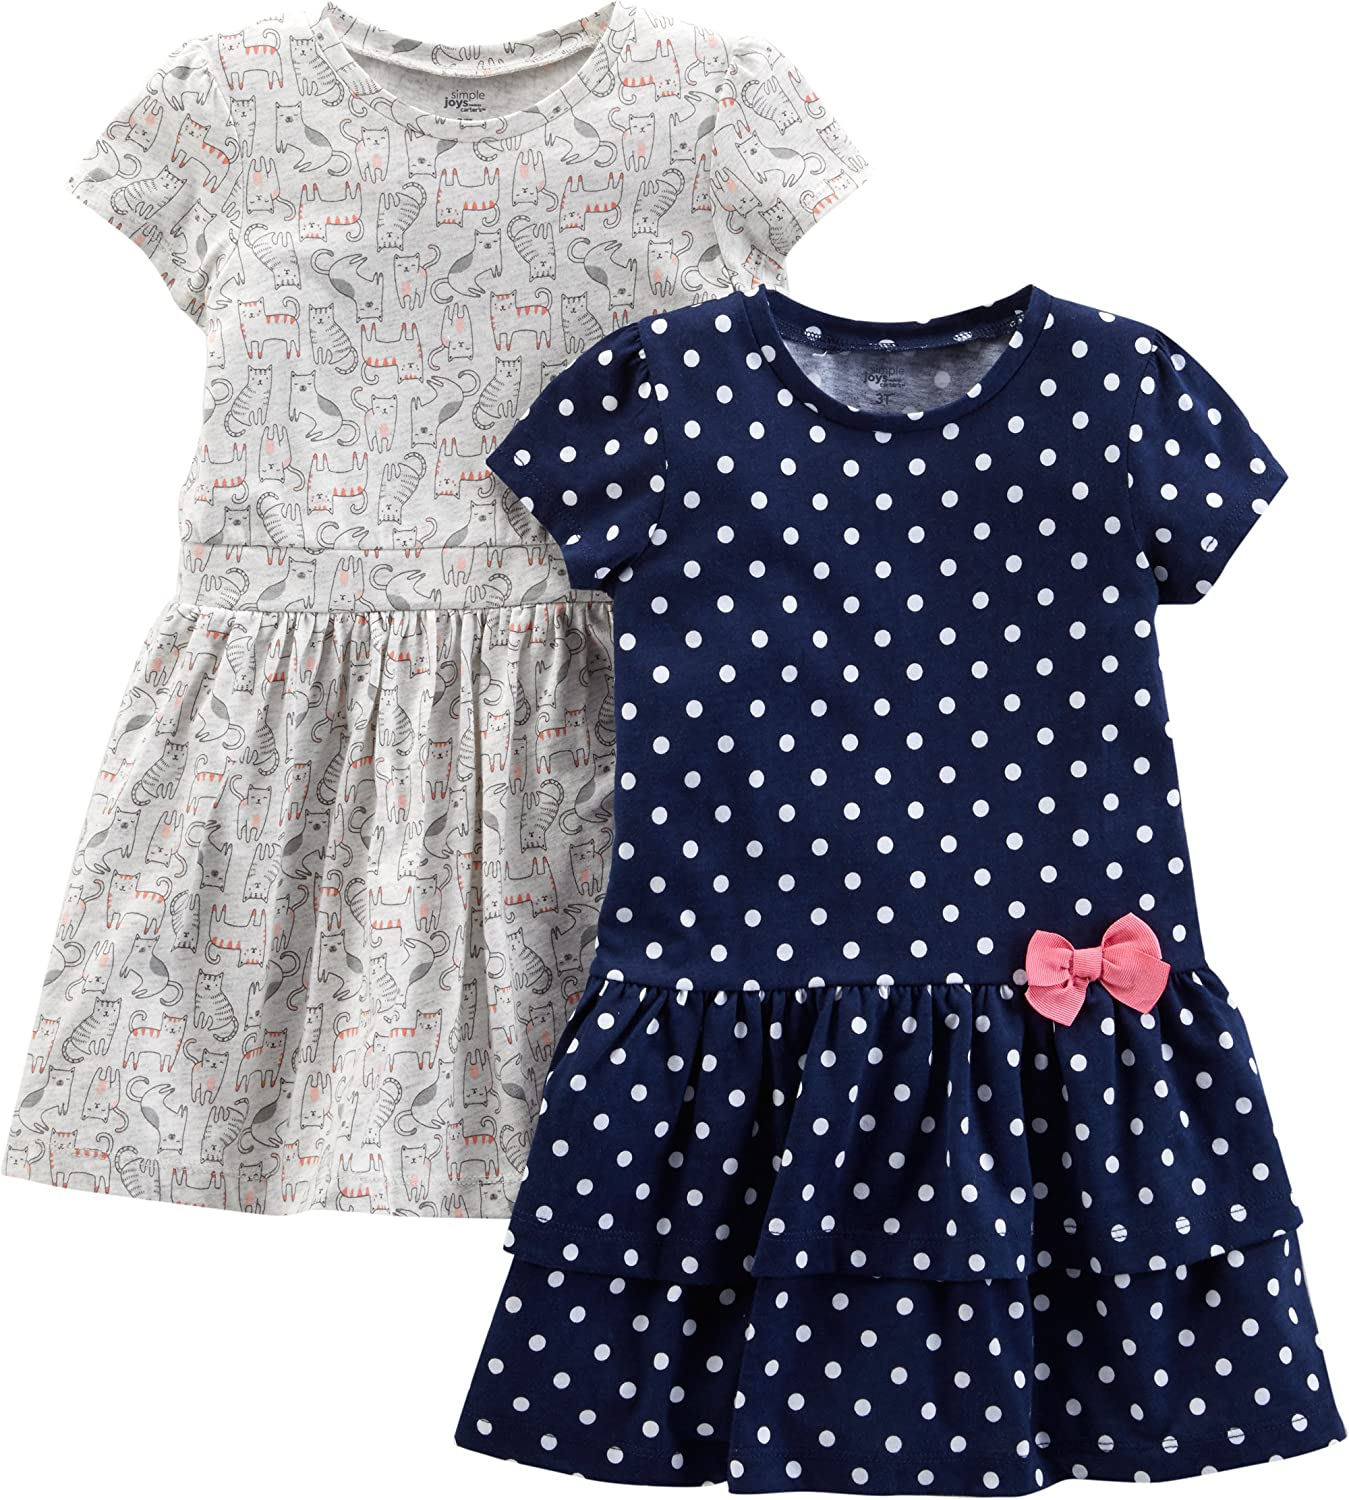 Simple Joys by Carters Baby and Toddler Girls 2-Pack Short-Sleeve and Sleeveless Dress Sets